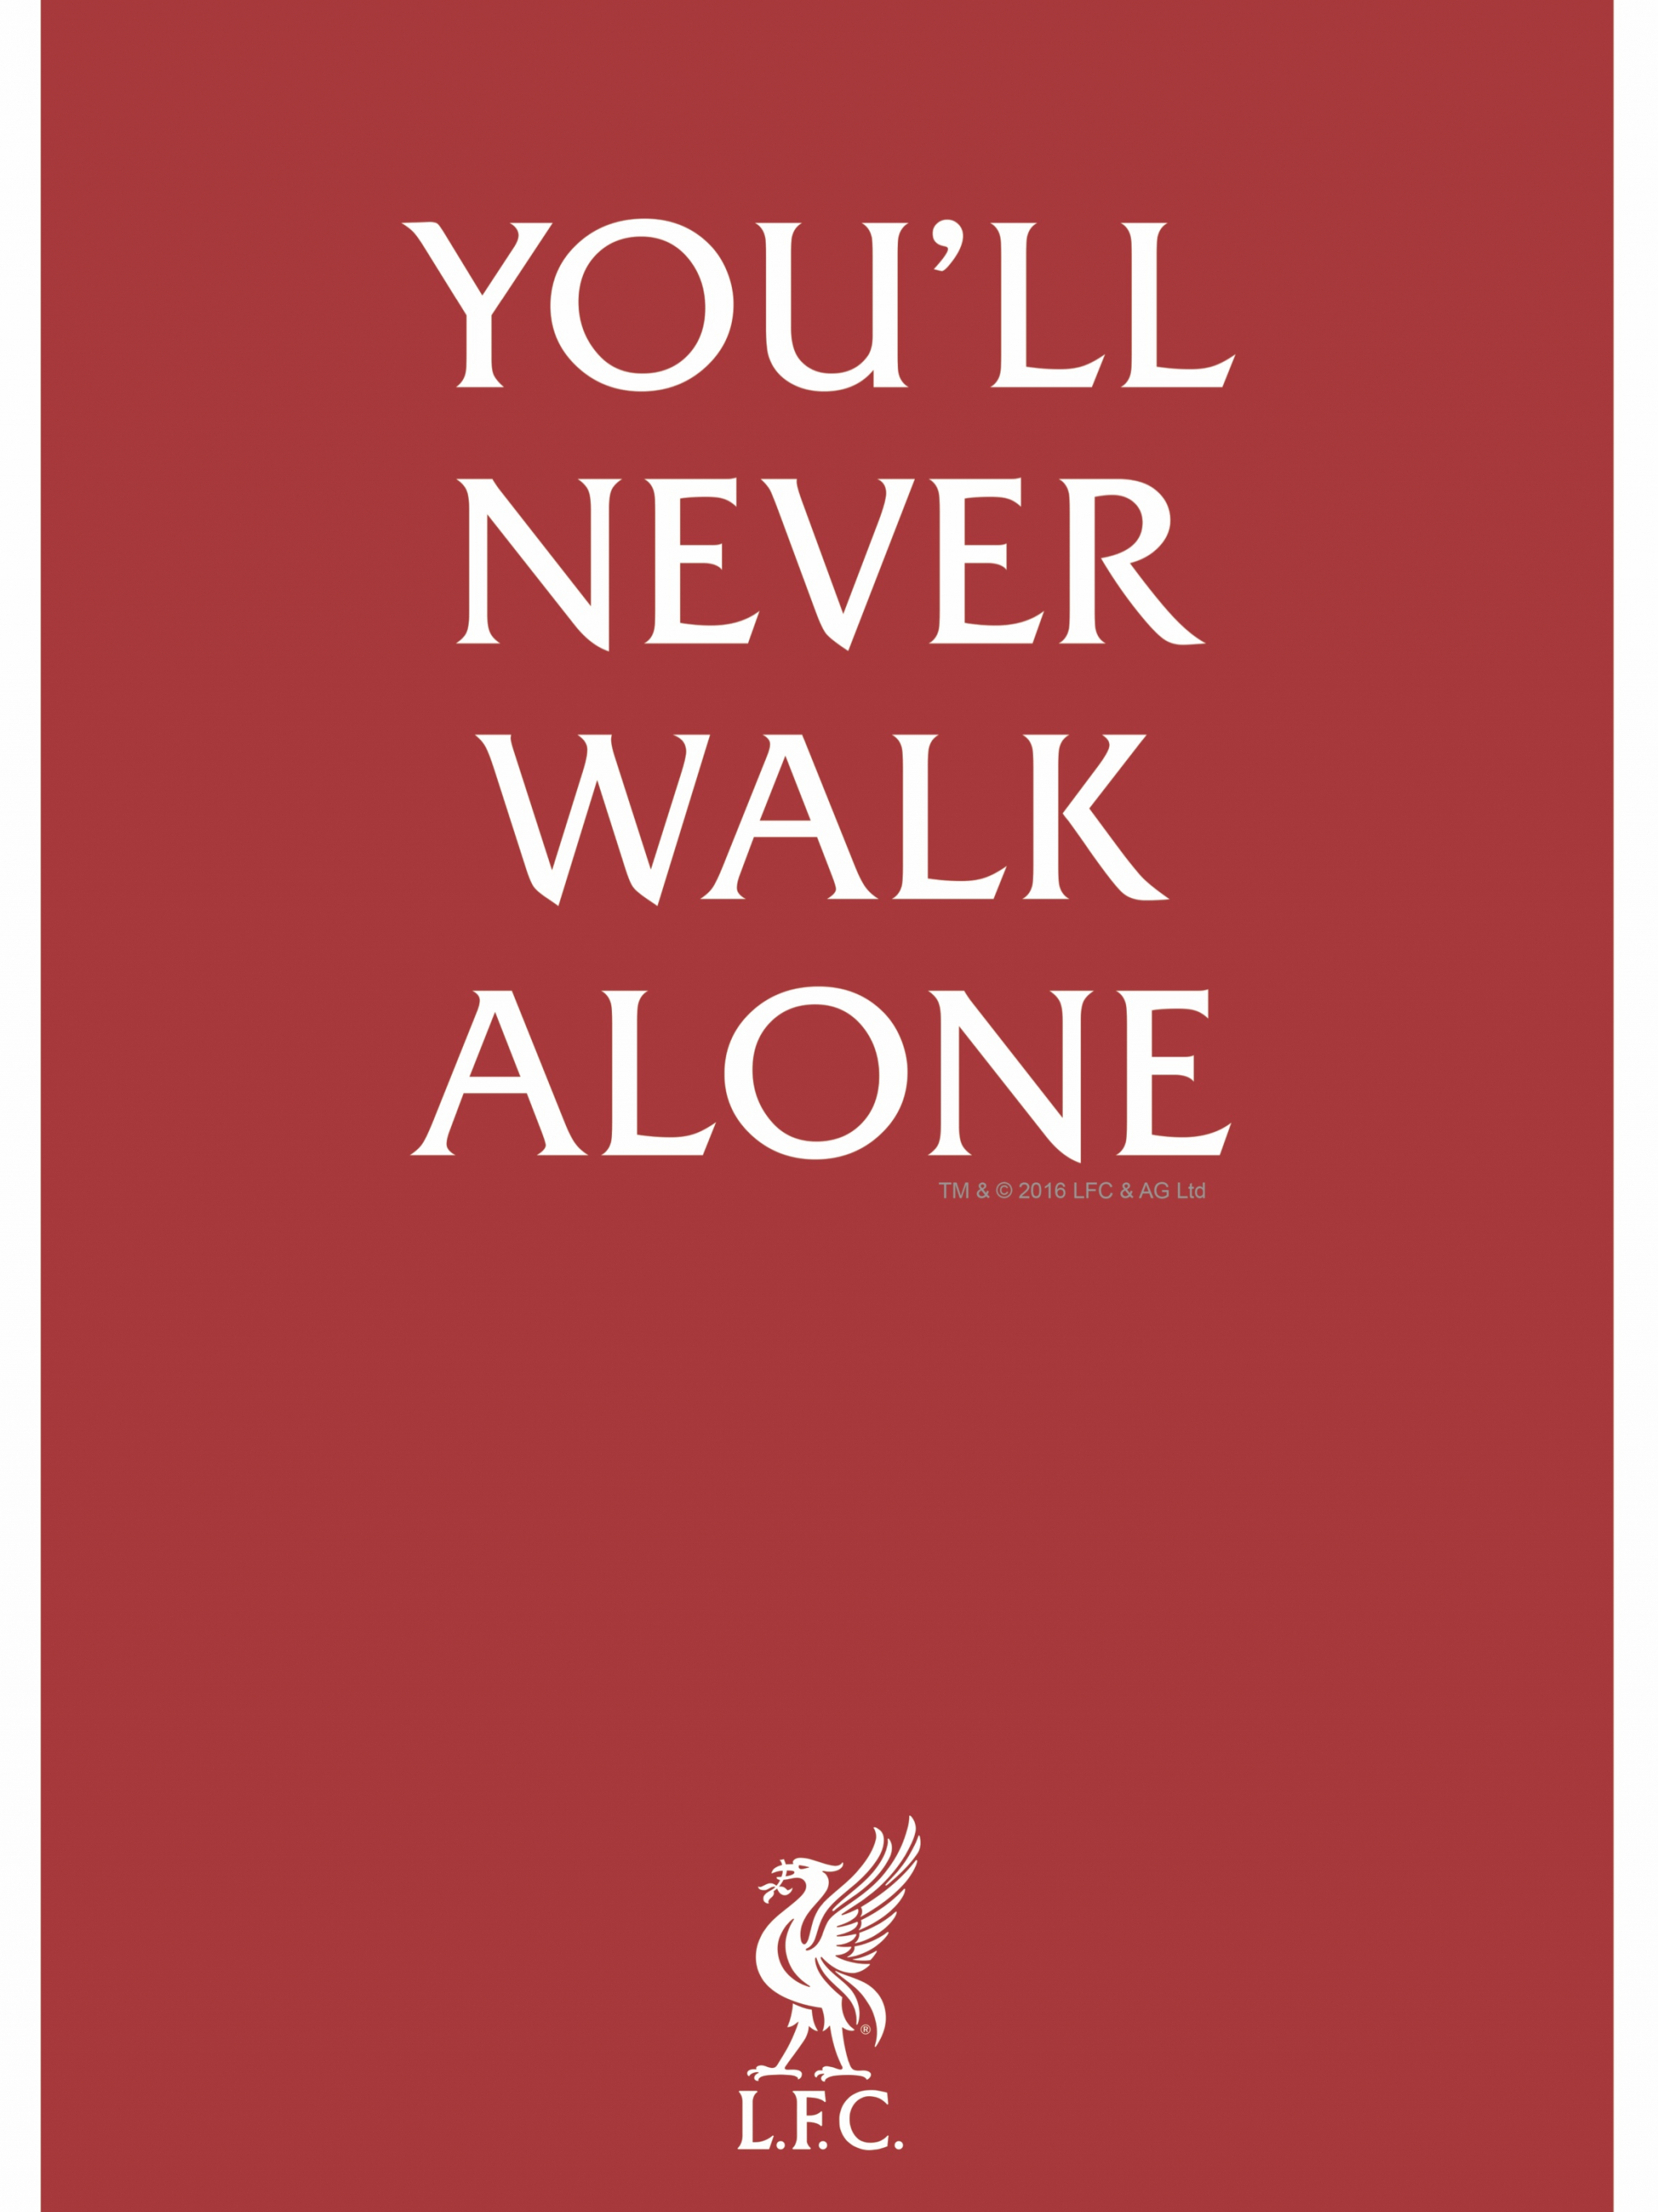 Free Download Lfc Youll Never Walk Alone Rather Says It All